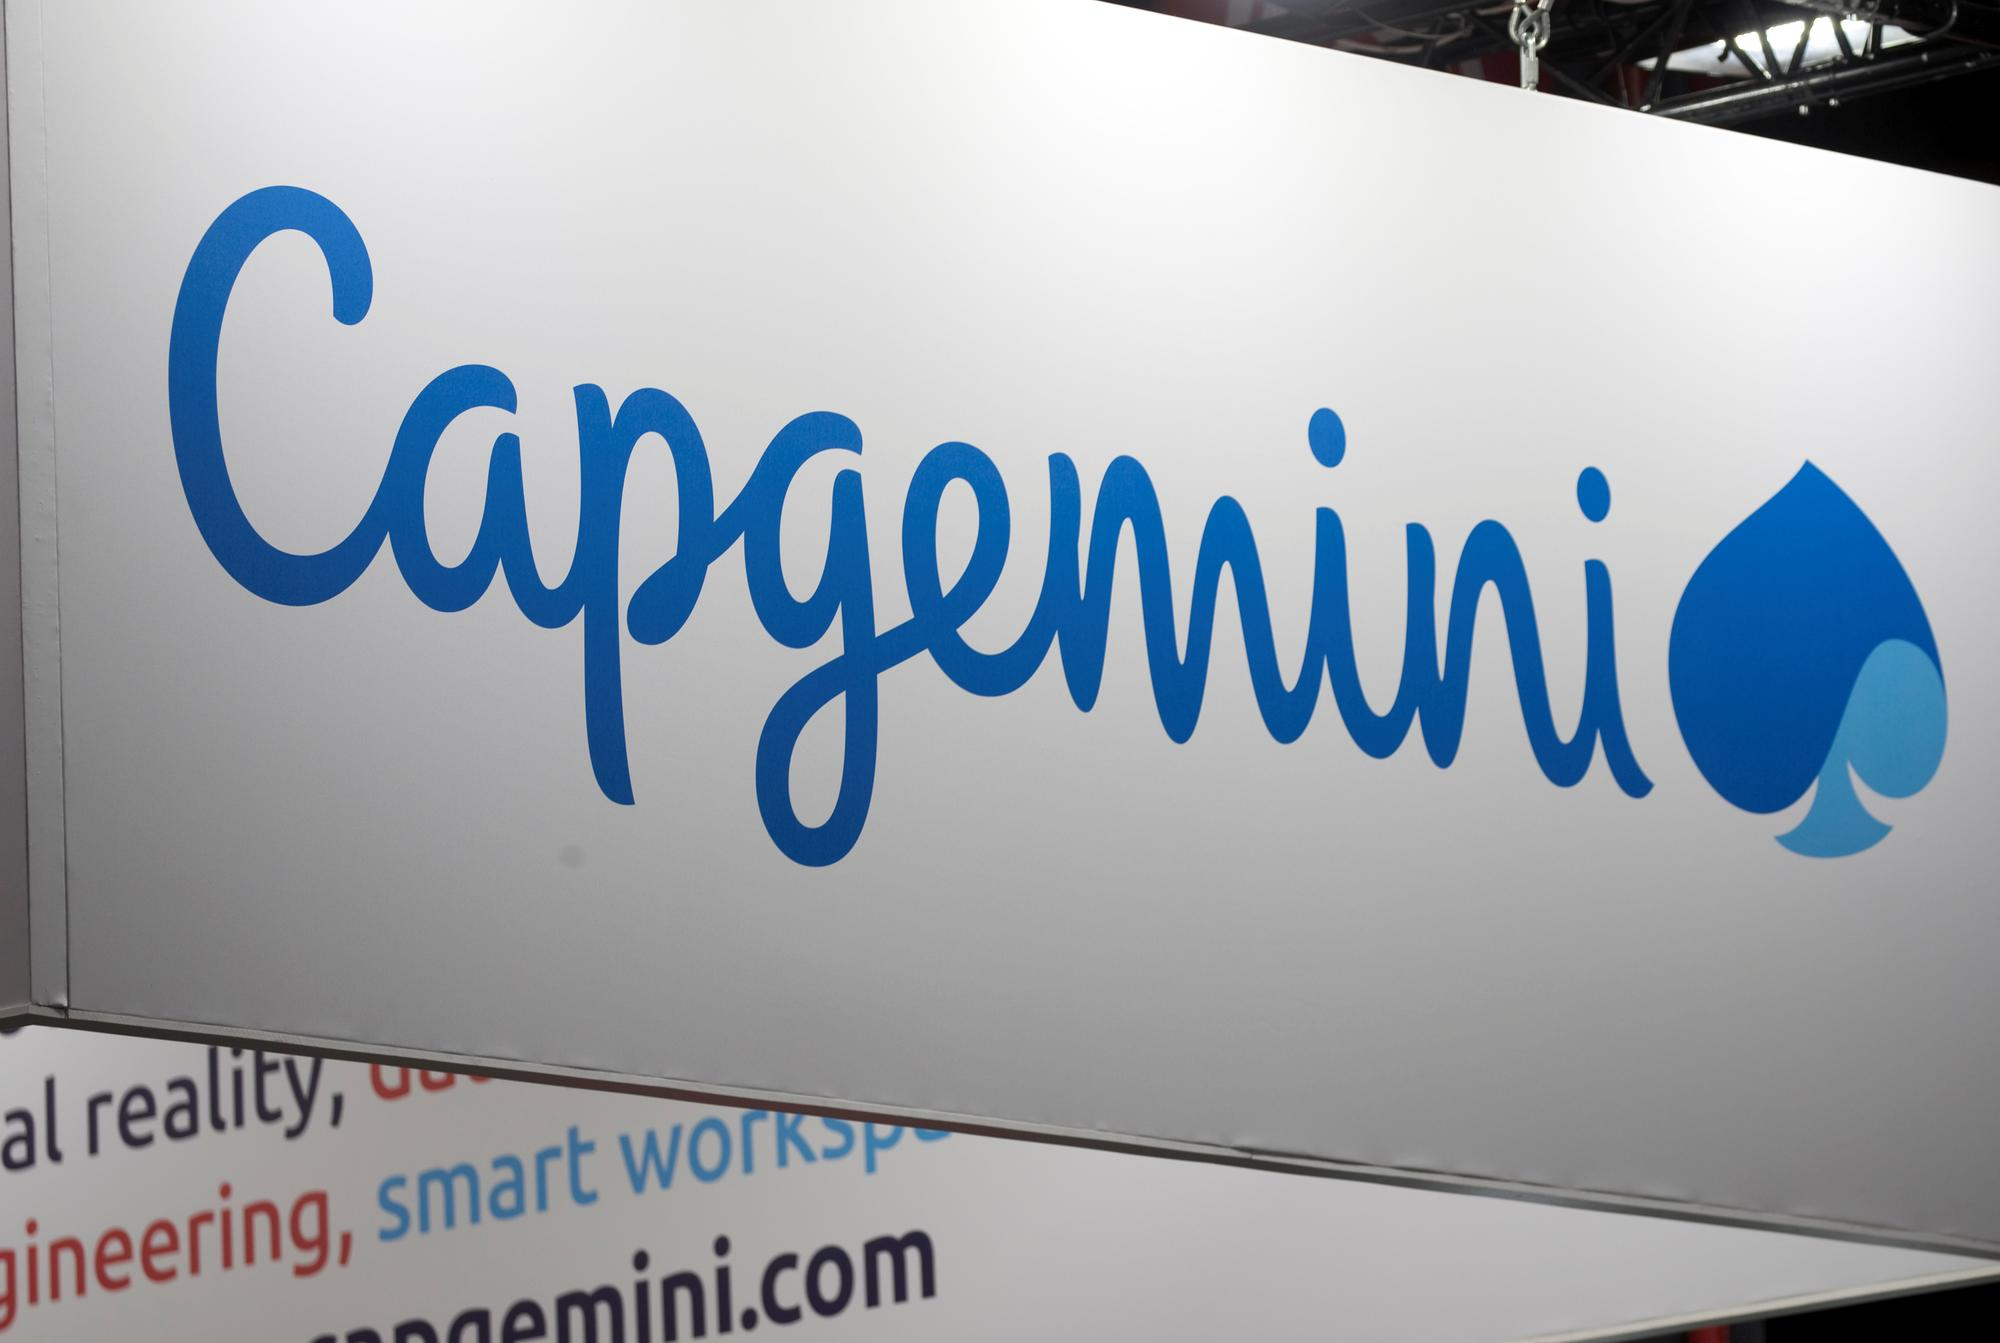 Capgemini passes first hurdle in Altran bid despite Elliott resistance